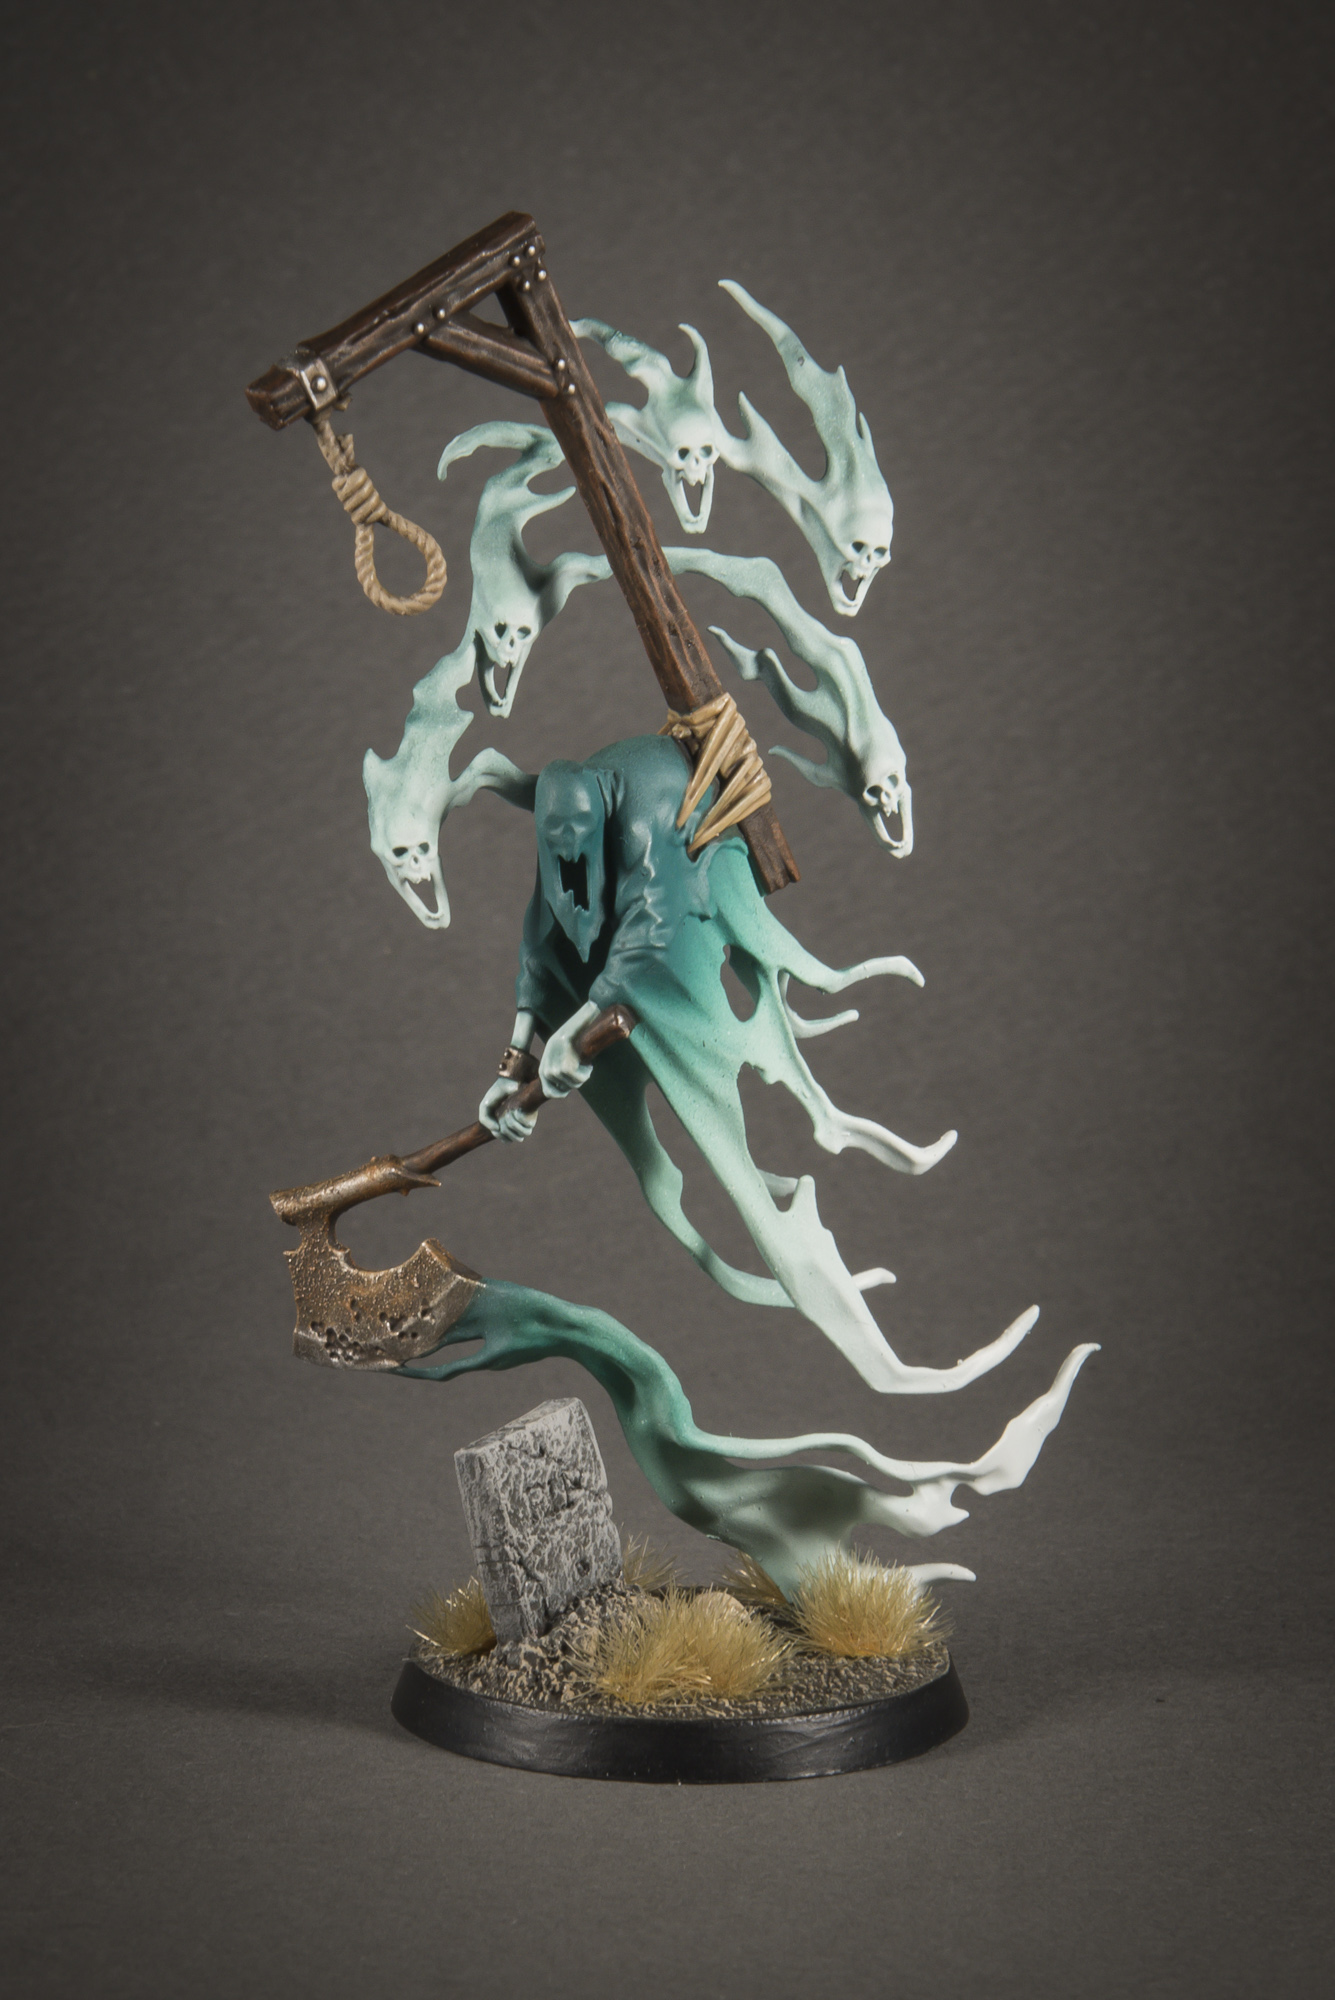 CoolMiniOrNot - Age of Sigmar Nighthaunt Lord Executioner by Green_Brush